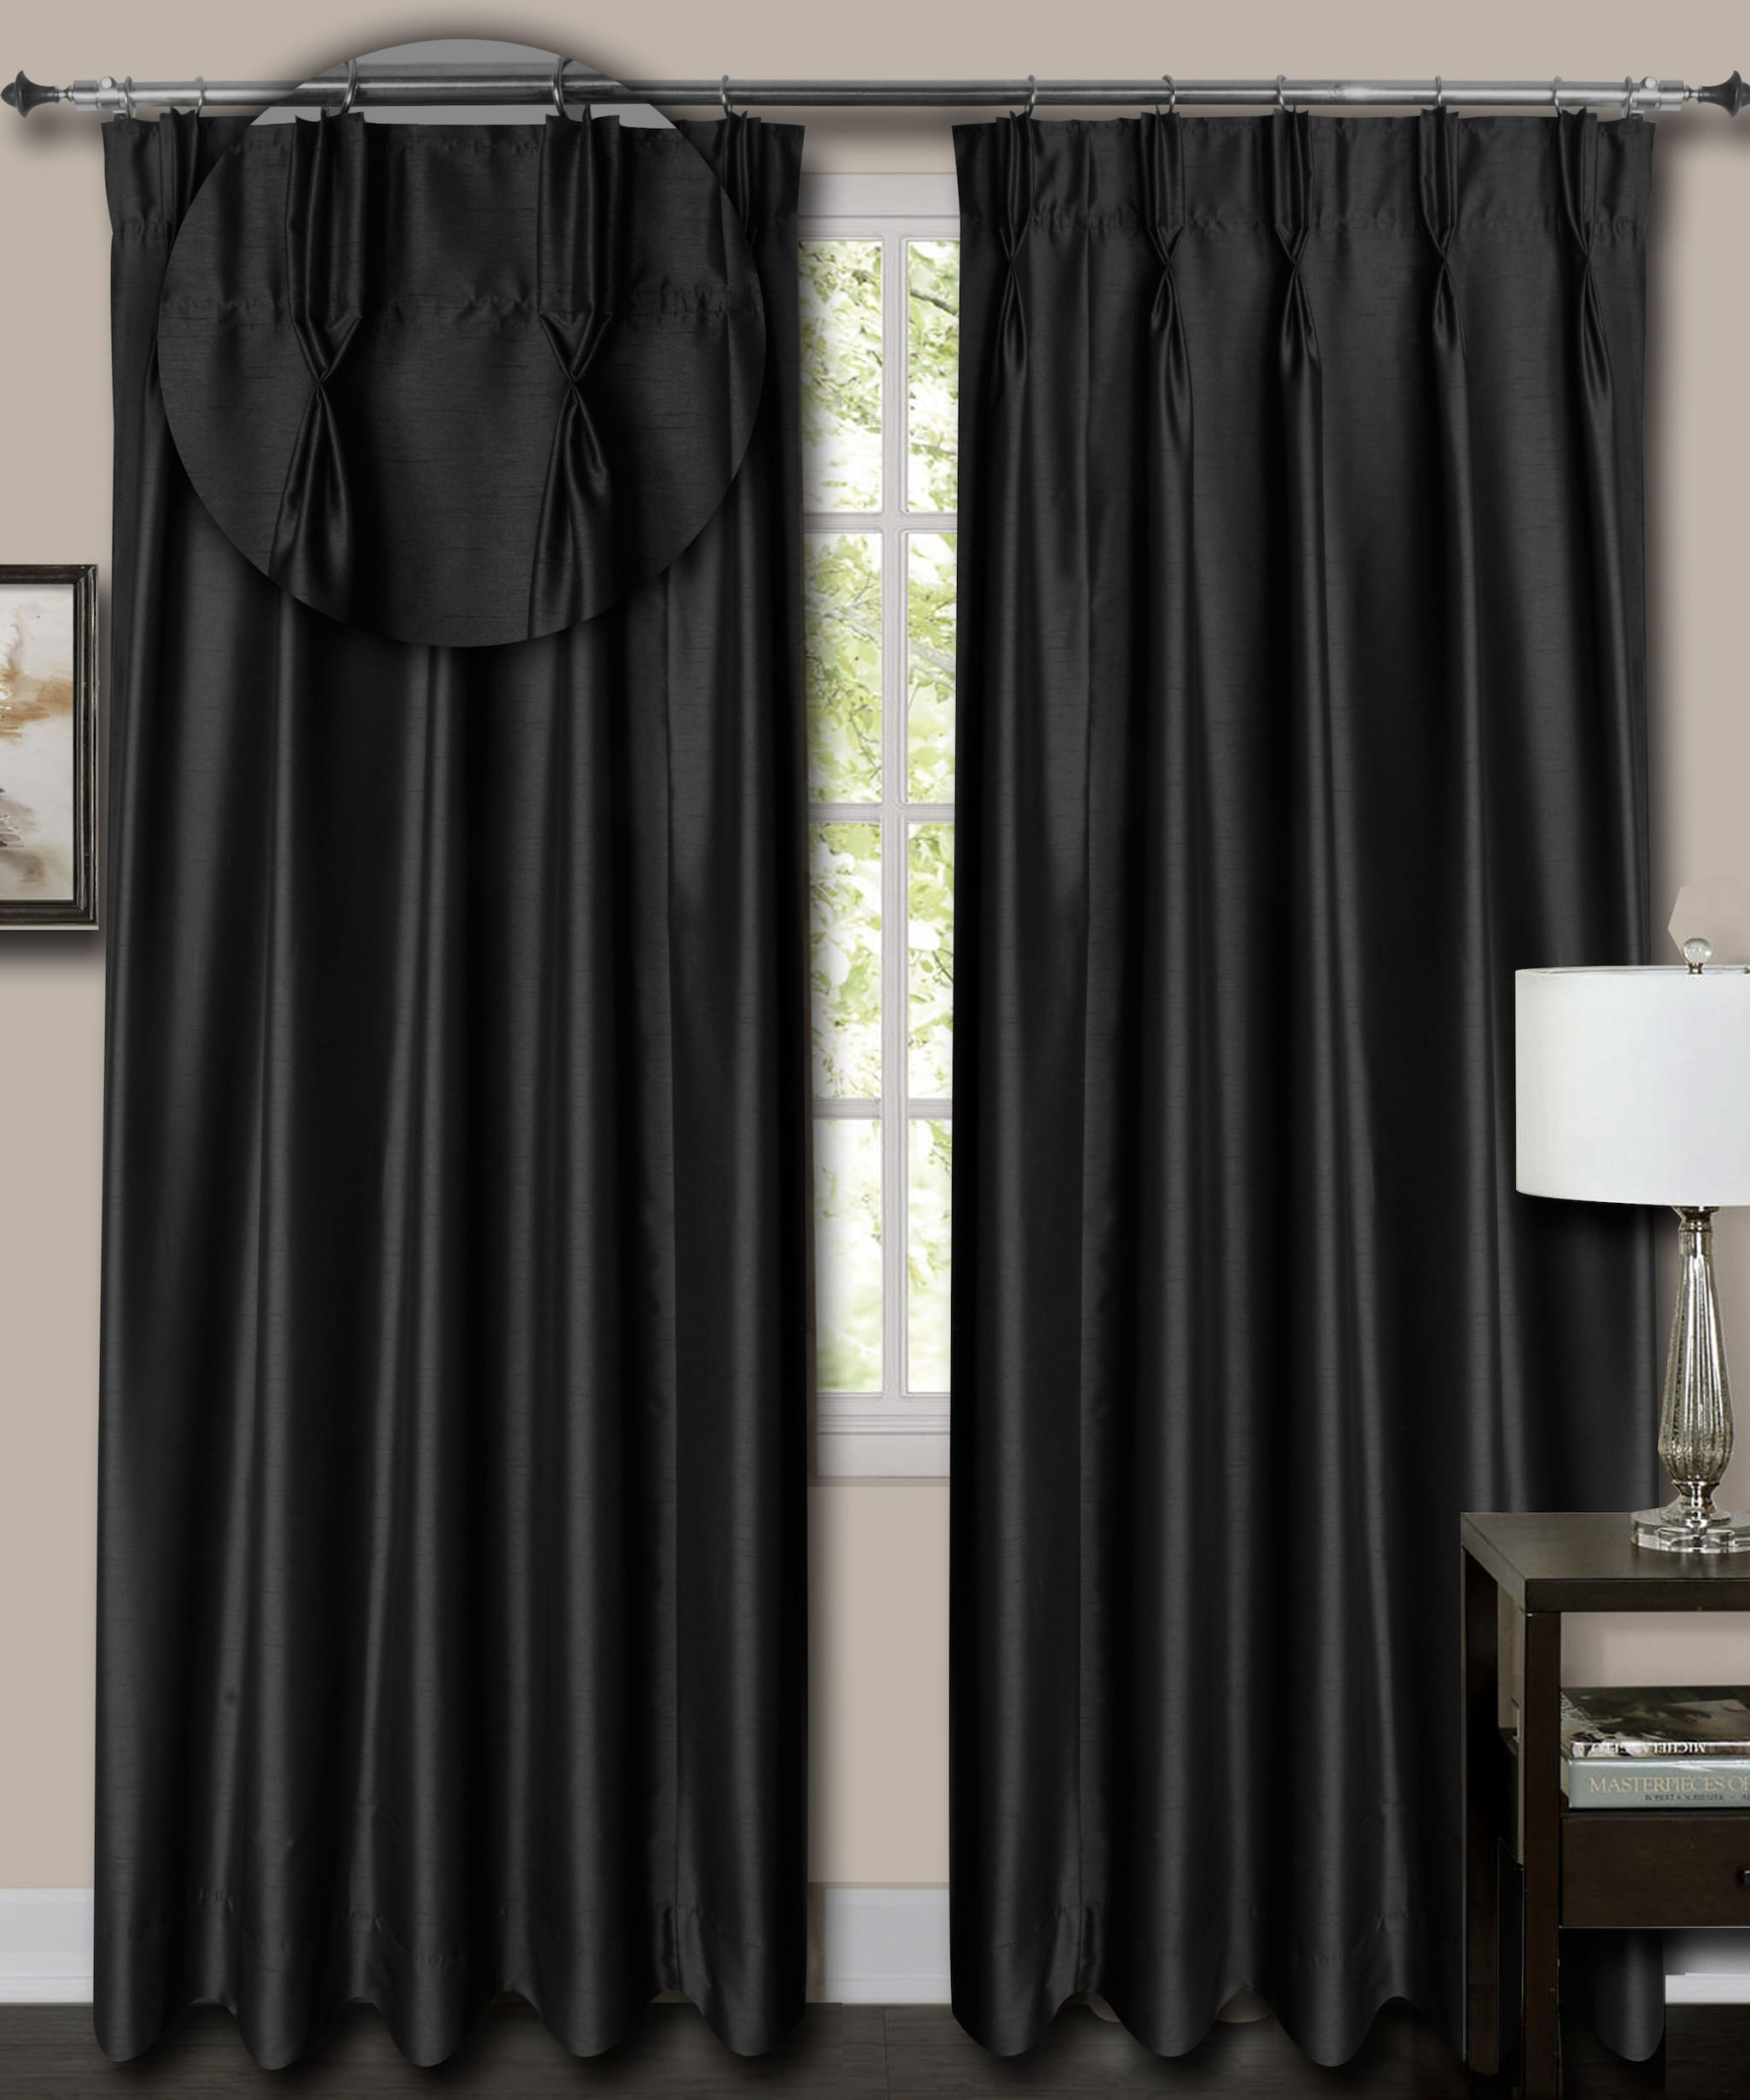 "French Pleat Top Black Faux Silk Dupioni Curtains. (52"" Wide,8 Feet Long,Without Lining)"